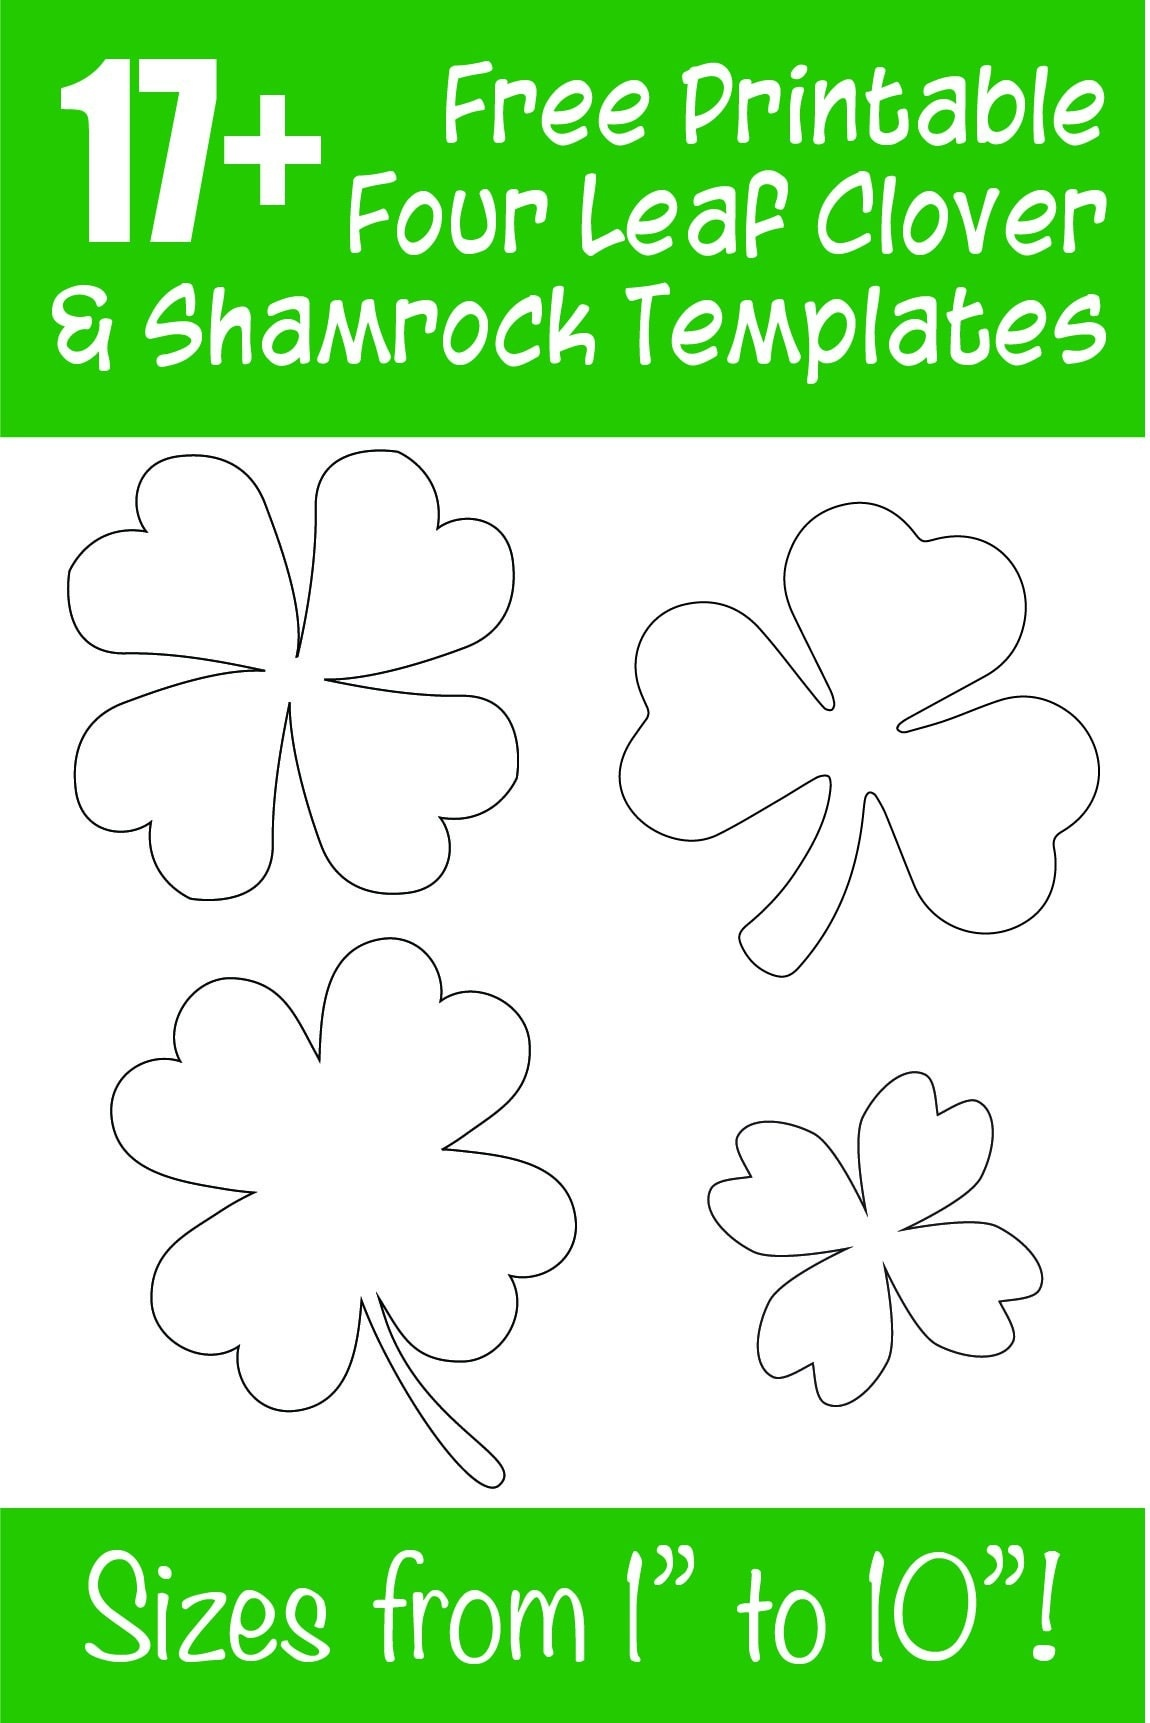 17+ Free Printable Four Leaf Clover & Shamrock Templates - The - Four Leaf Clover Template Printable Free